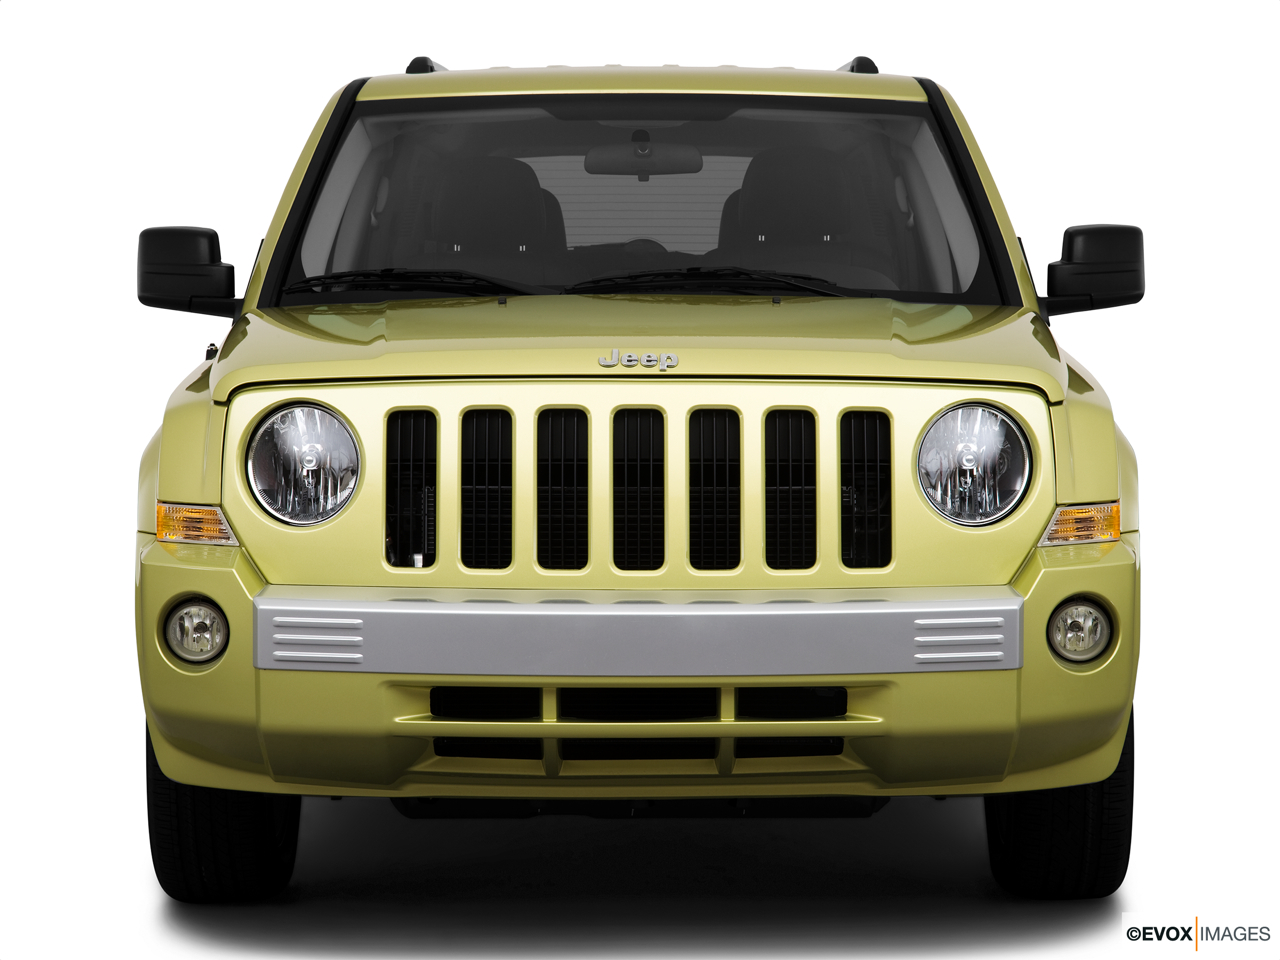 2010 Jeep Patriot Limited Low/wide front.